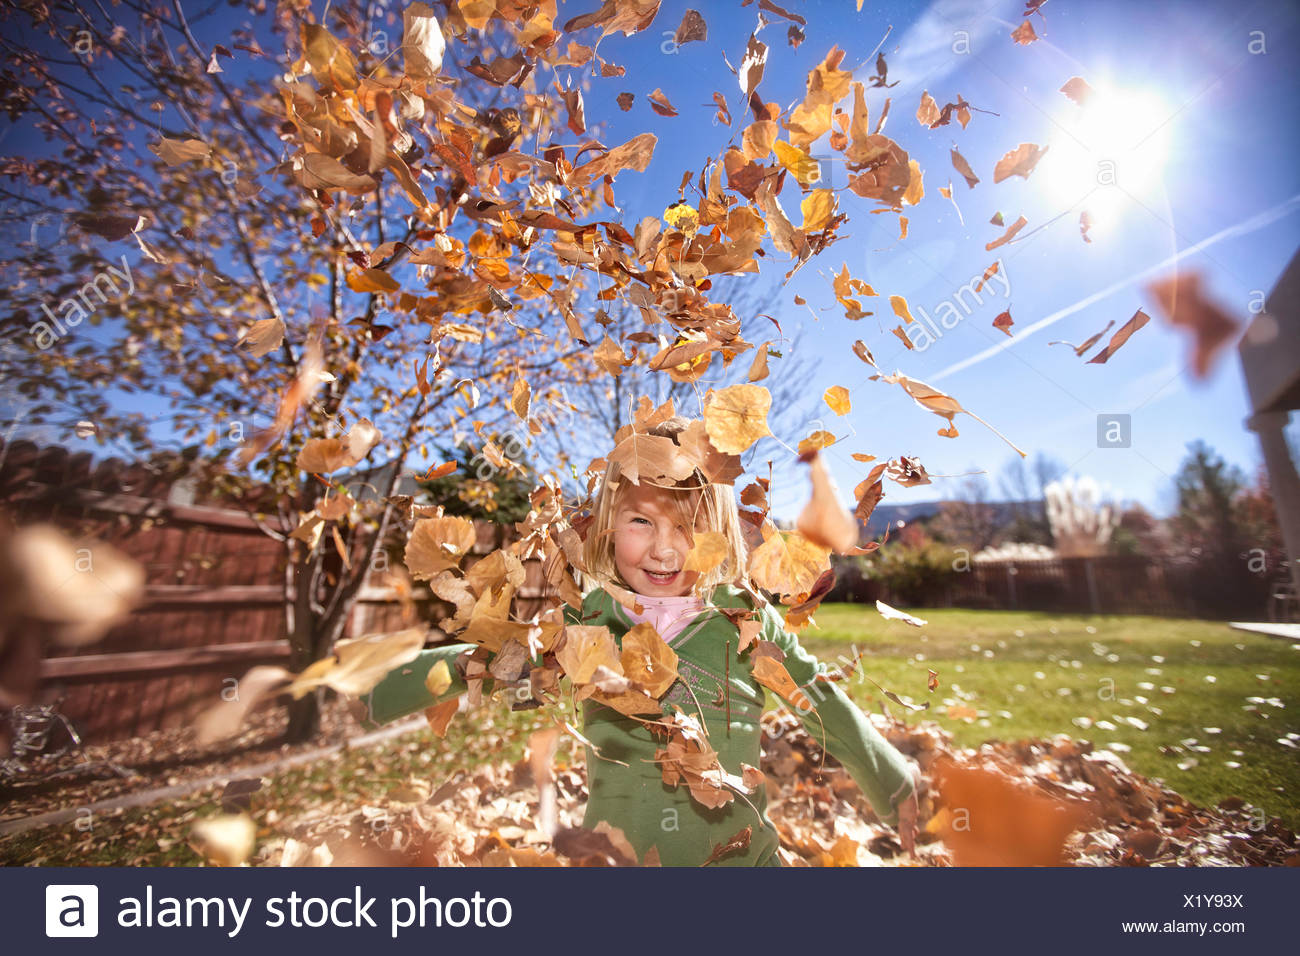 Girl throwing autumn leaves in the air - Stock Image